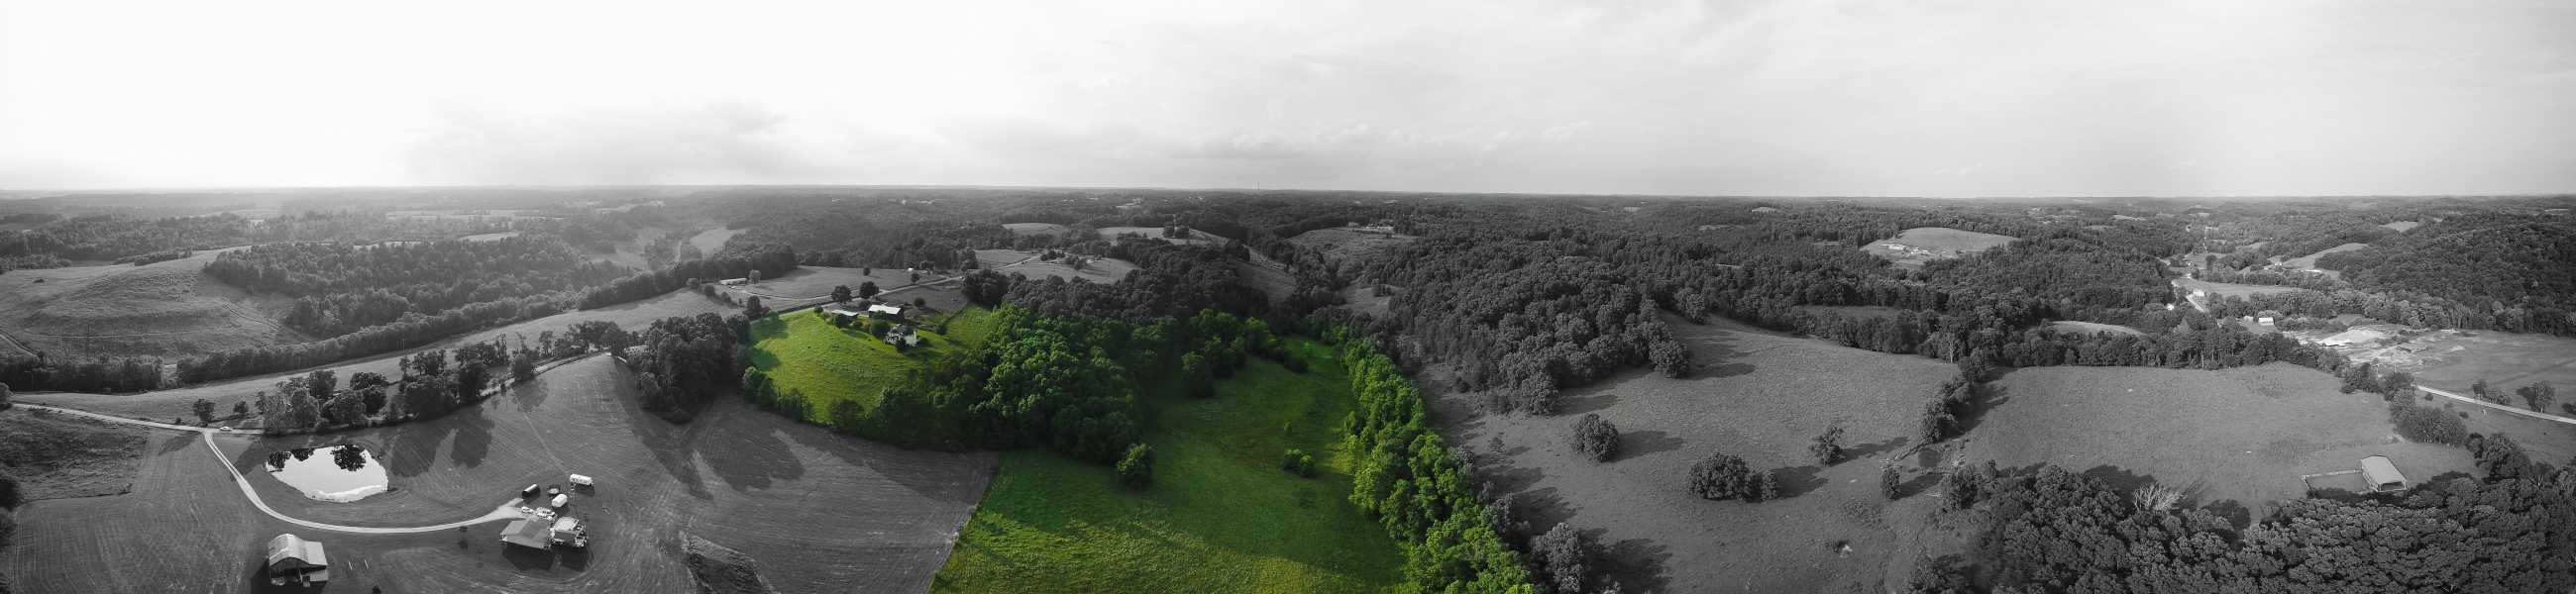 Drone Photo Annville KY